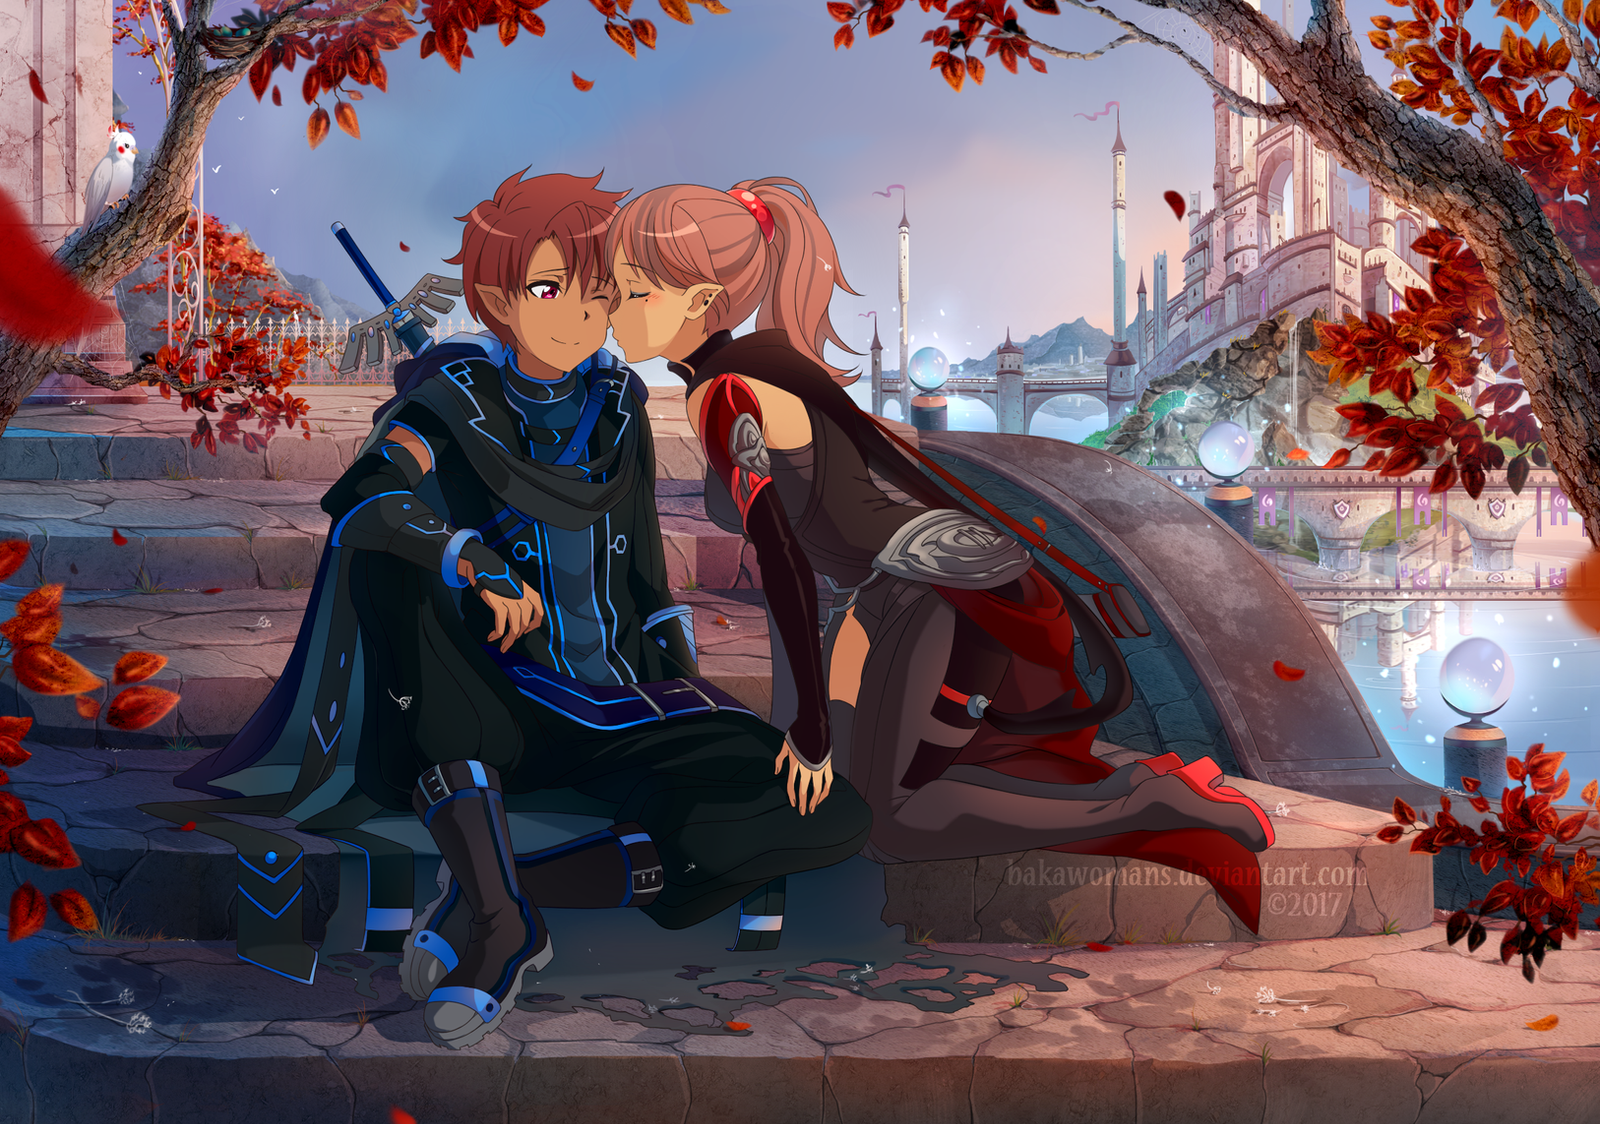 http://img13.deviantart.net/ef05/i/2017/145/8/b/____sunset_kiss___mlp_sao_oc_pp_commission__by_bakawomans-dbae3zo.png